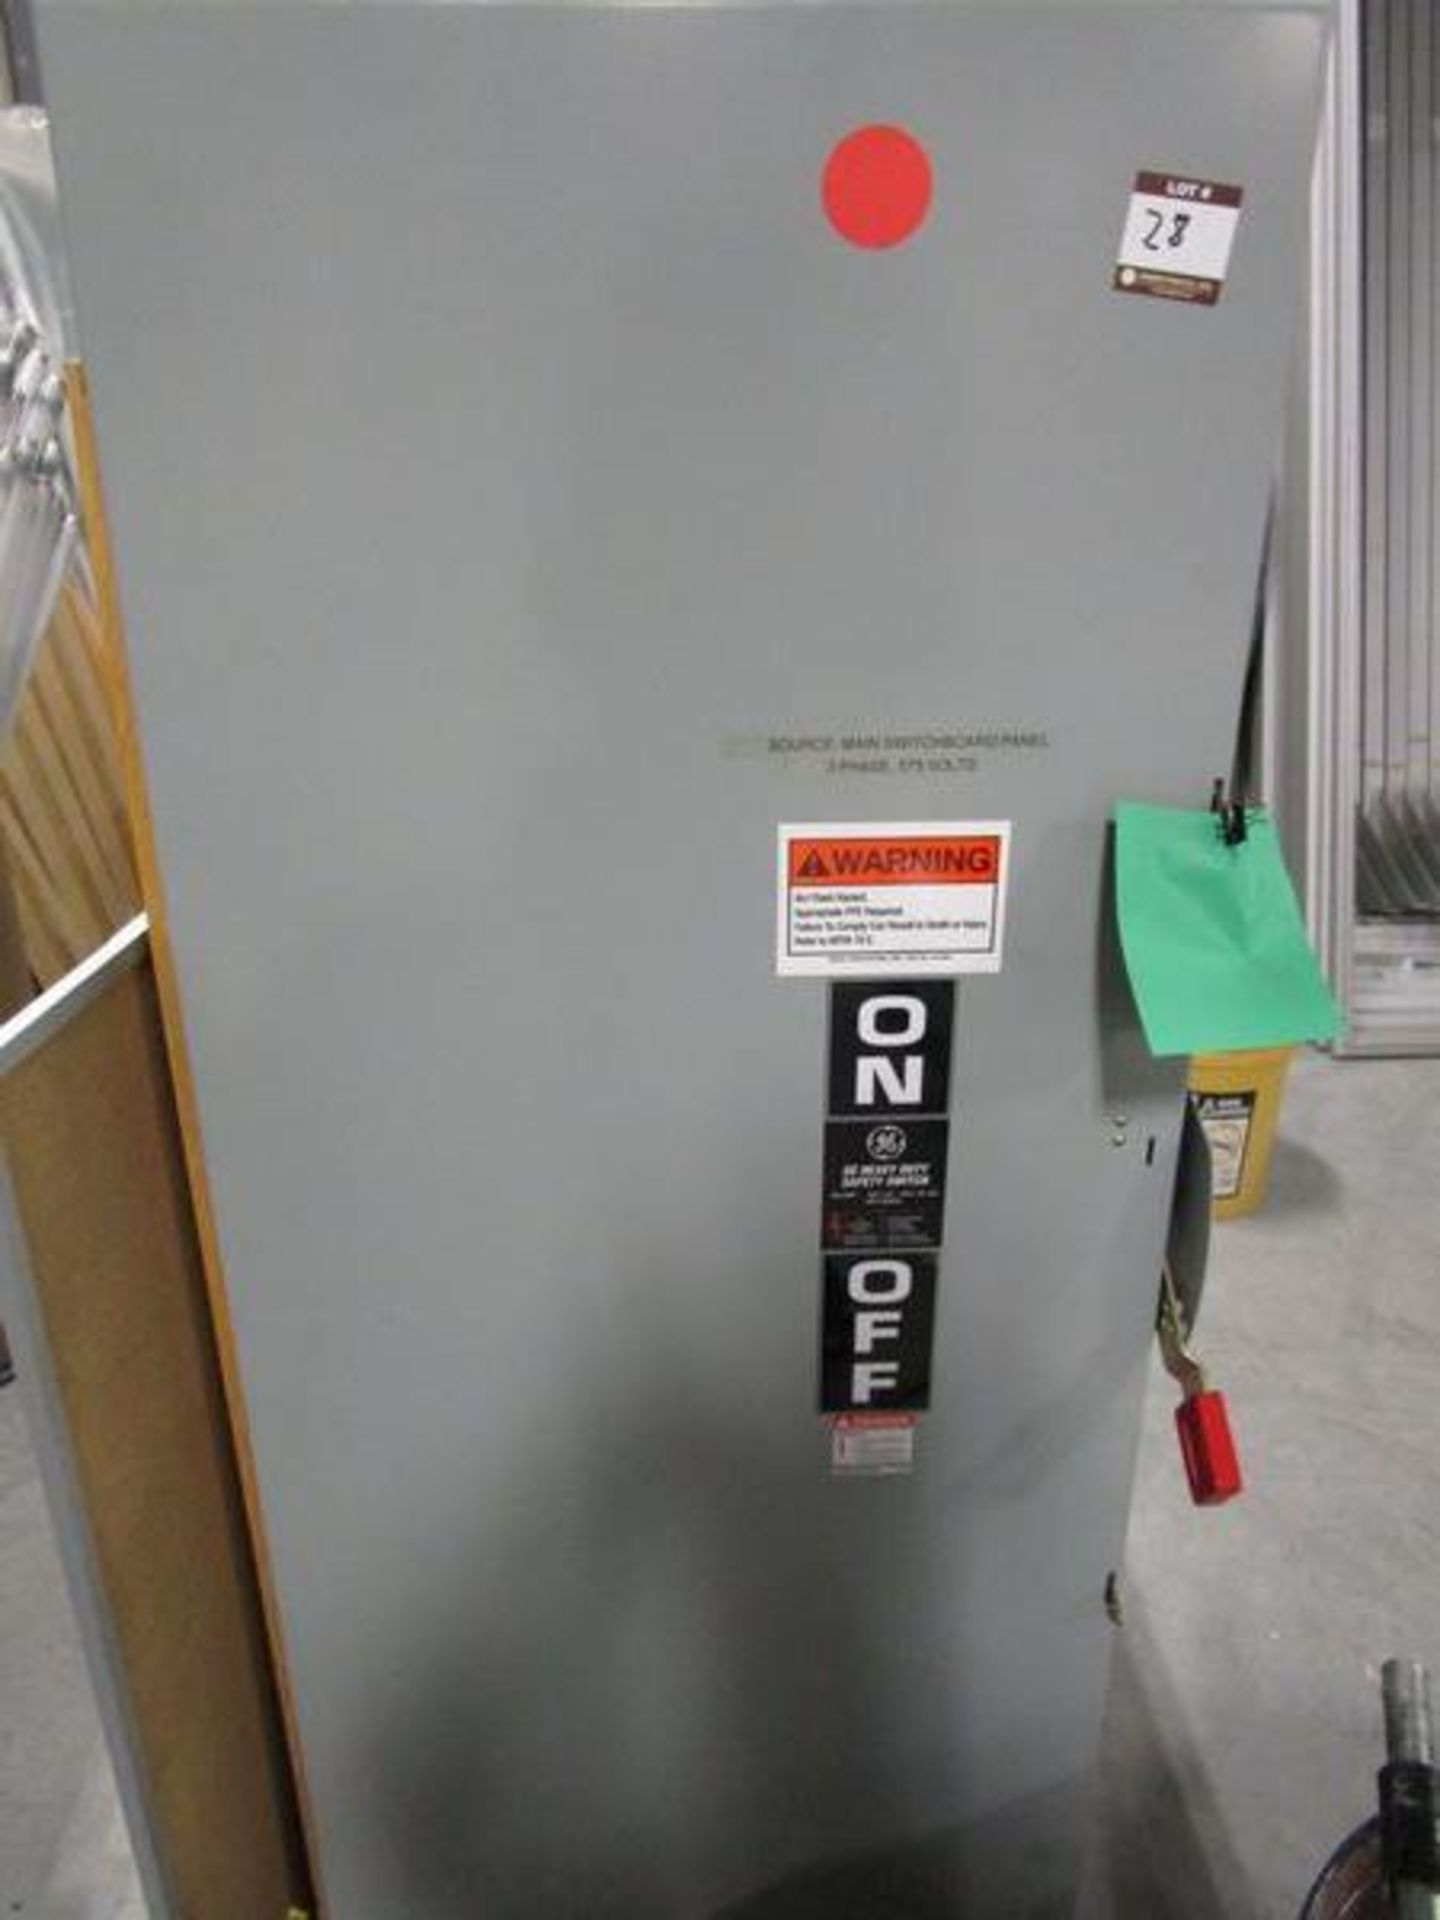 Lot GE HD Safety Switch, Acme T-252703-1 Autotransformer, Acme T-2A-52717-1 Transformer - Image 2 of 6